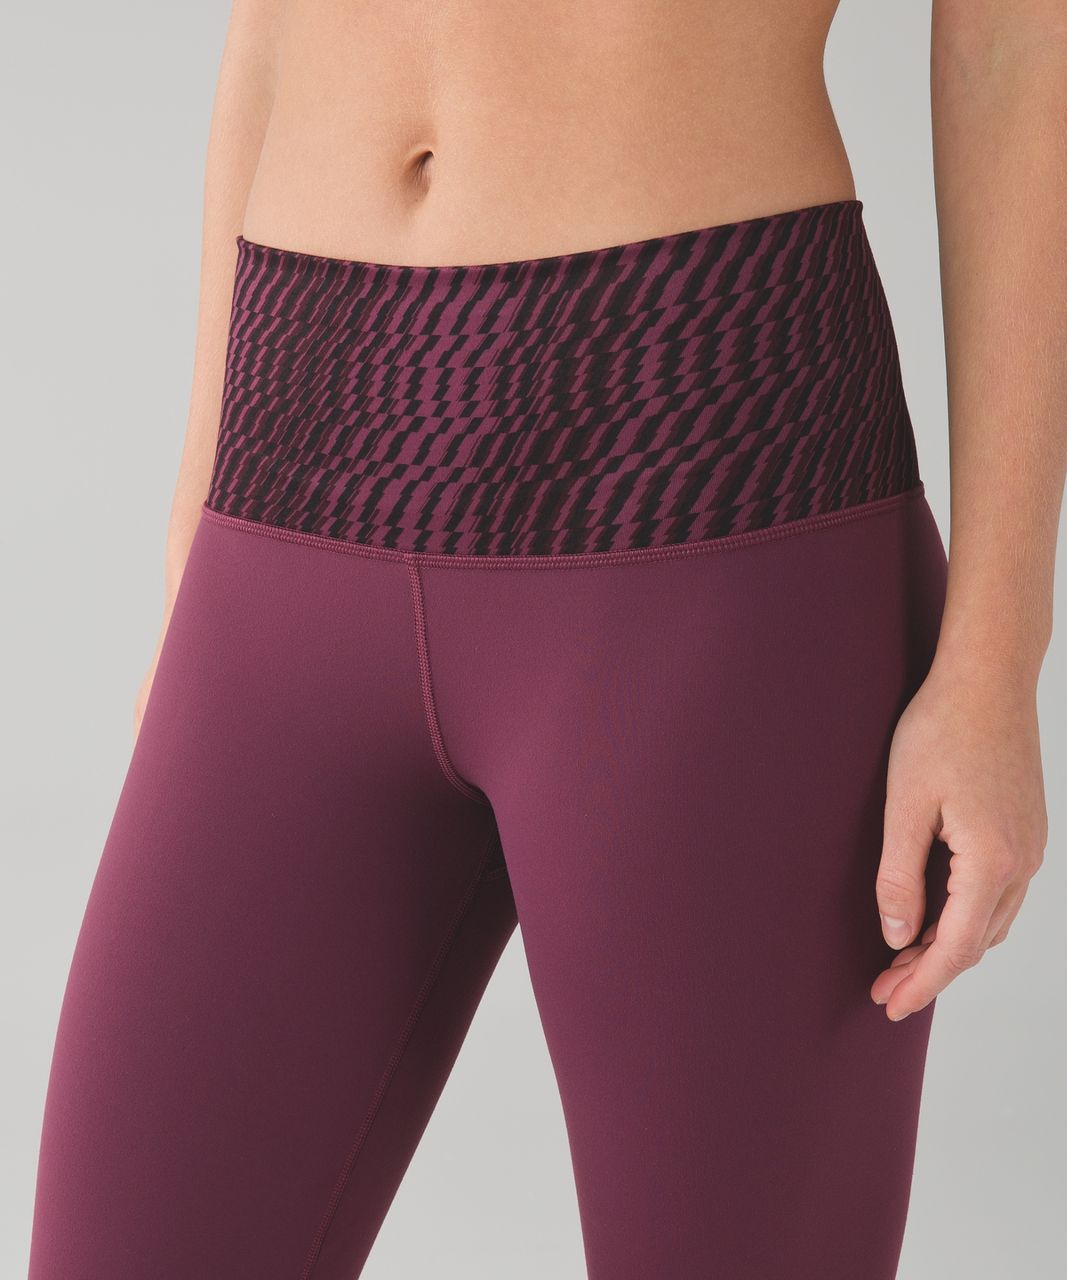 Lululemon Groove Pant III (Regular) *Full-On Luon - Red Grape / Shifted Horizon Red Grape Black